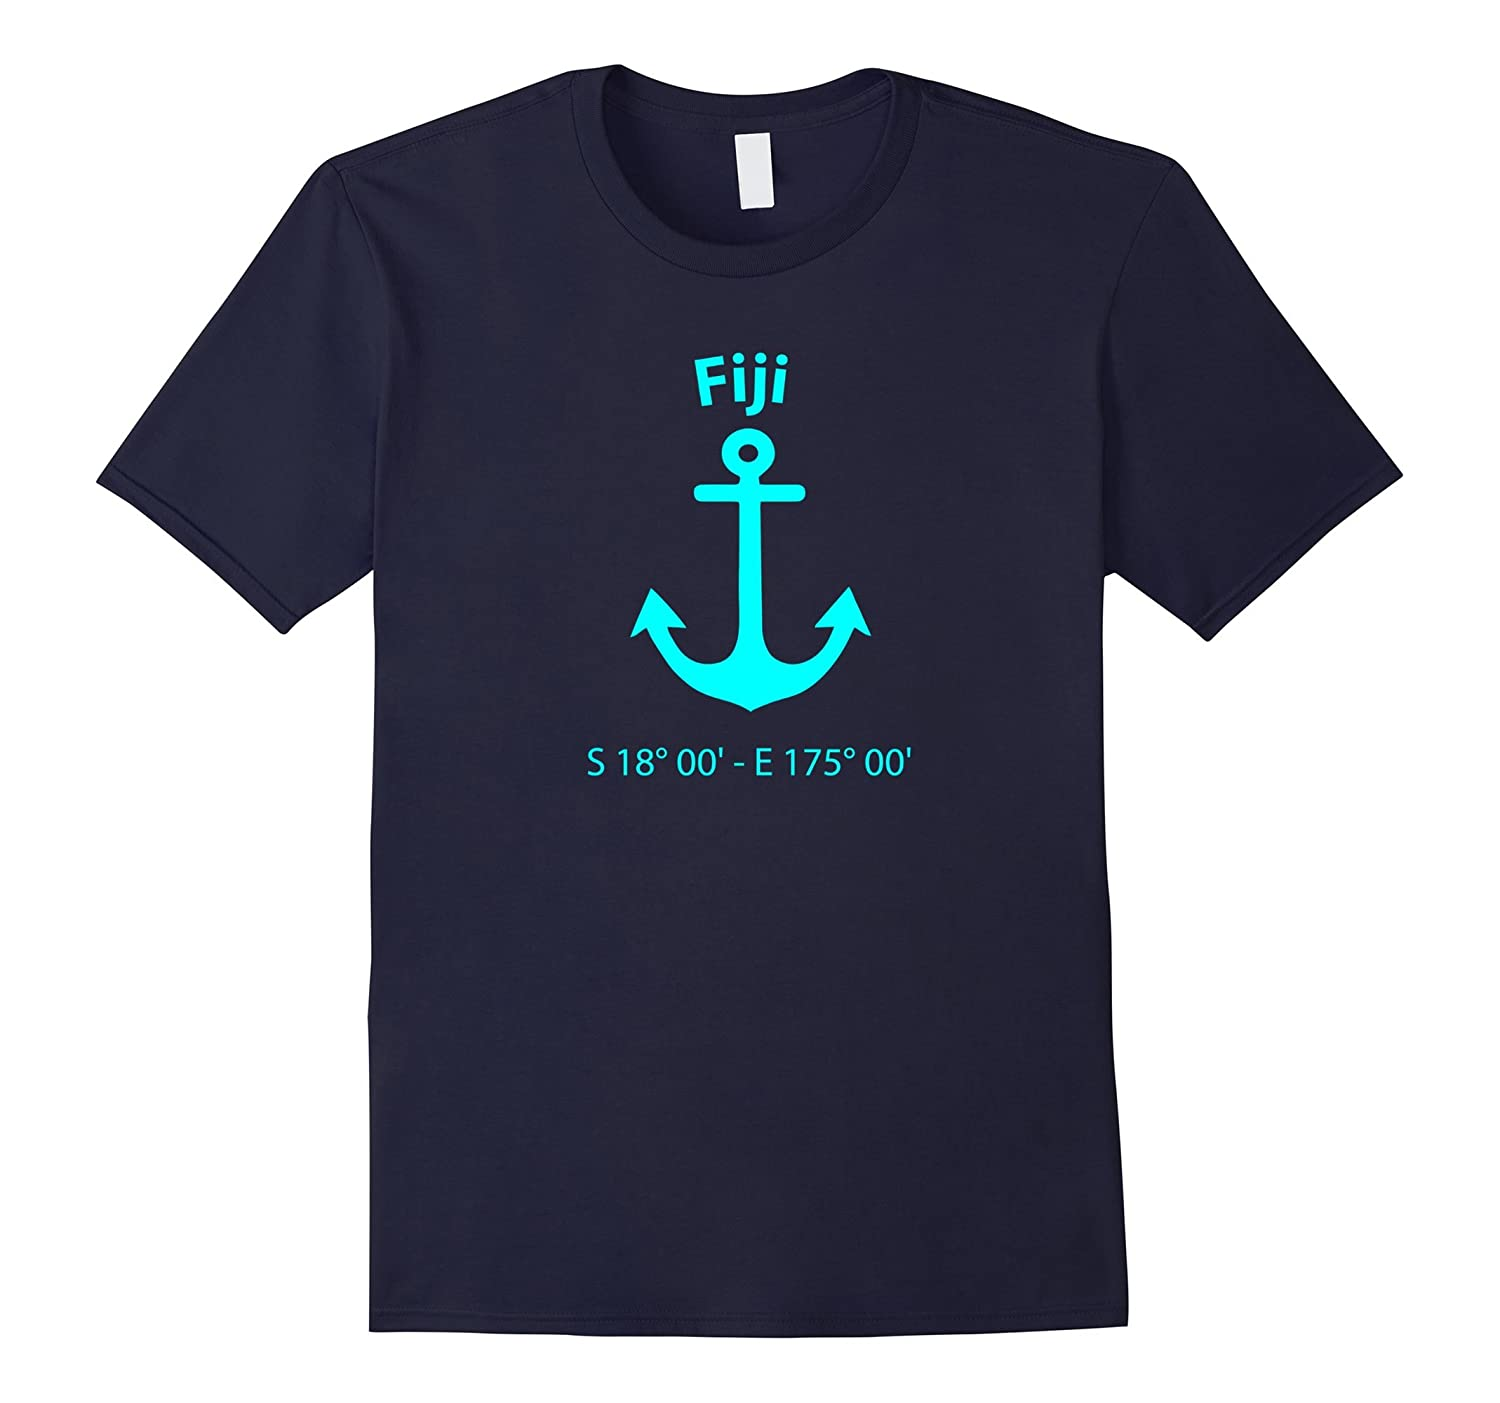 Fiji Nautical Coordinates Anchor T-Shirt For Sailors-TJ